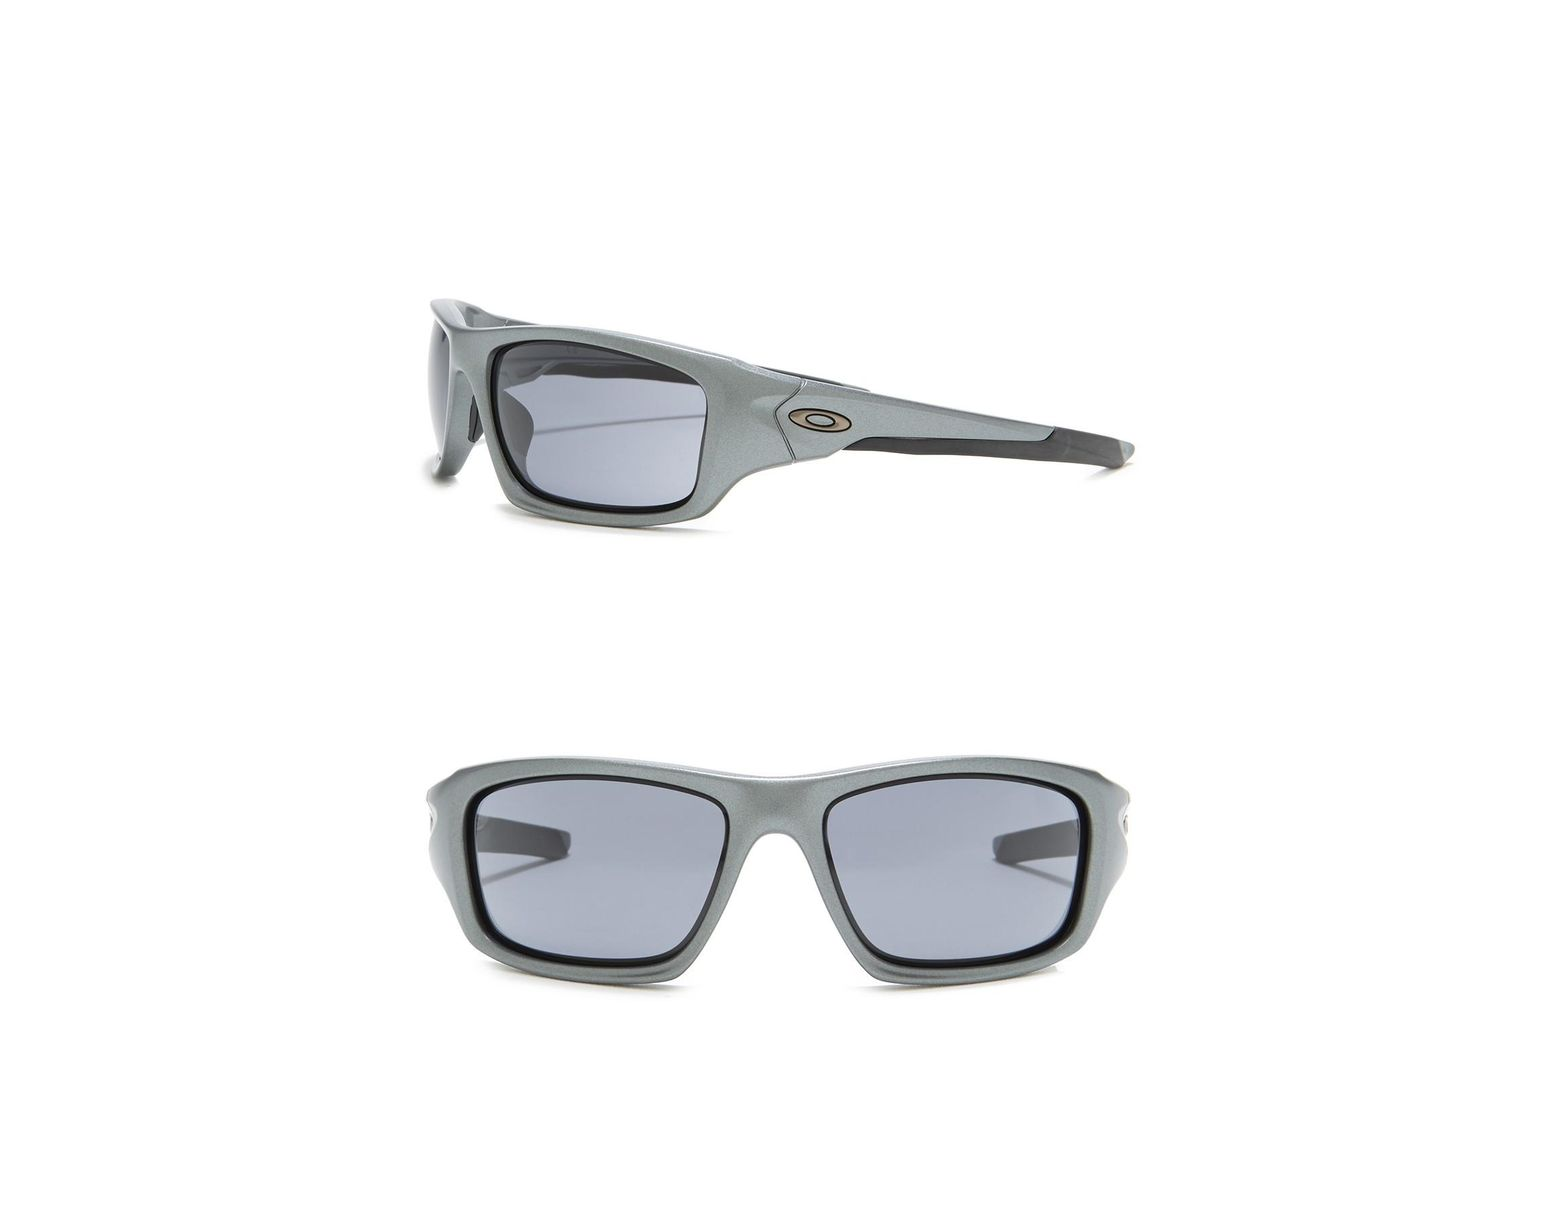 47f392ae6 Oakley Valve 60mm Wrap Sunglasses in Gray for Men - Lyst